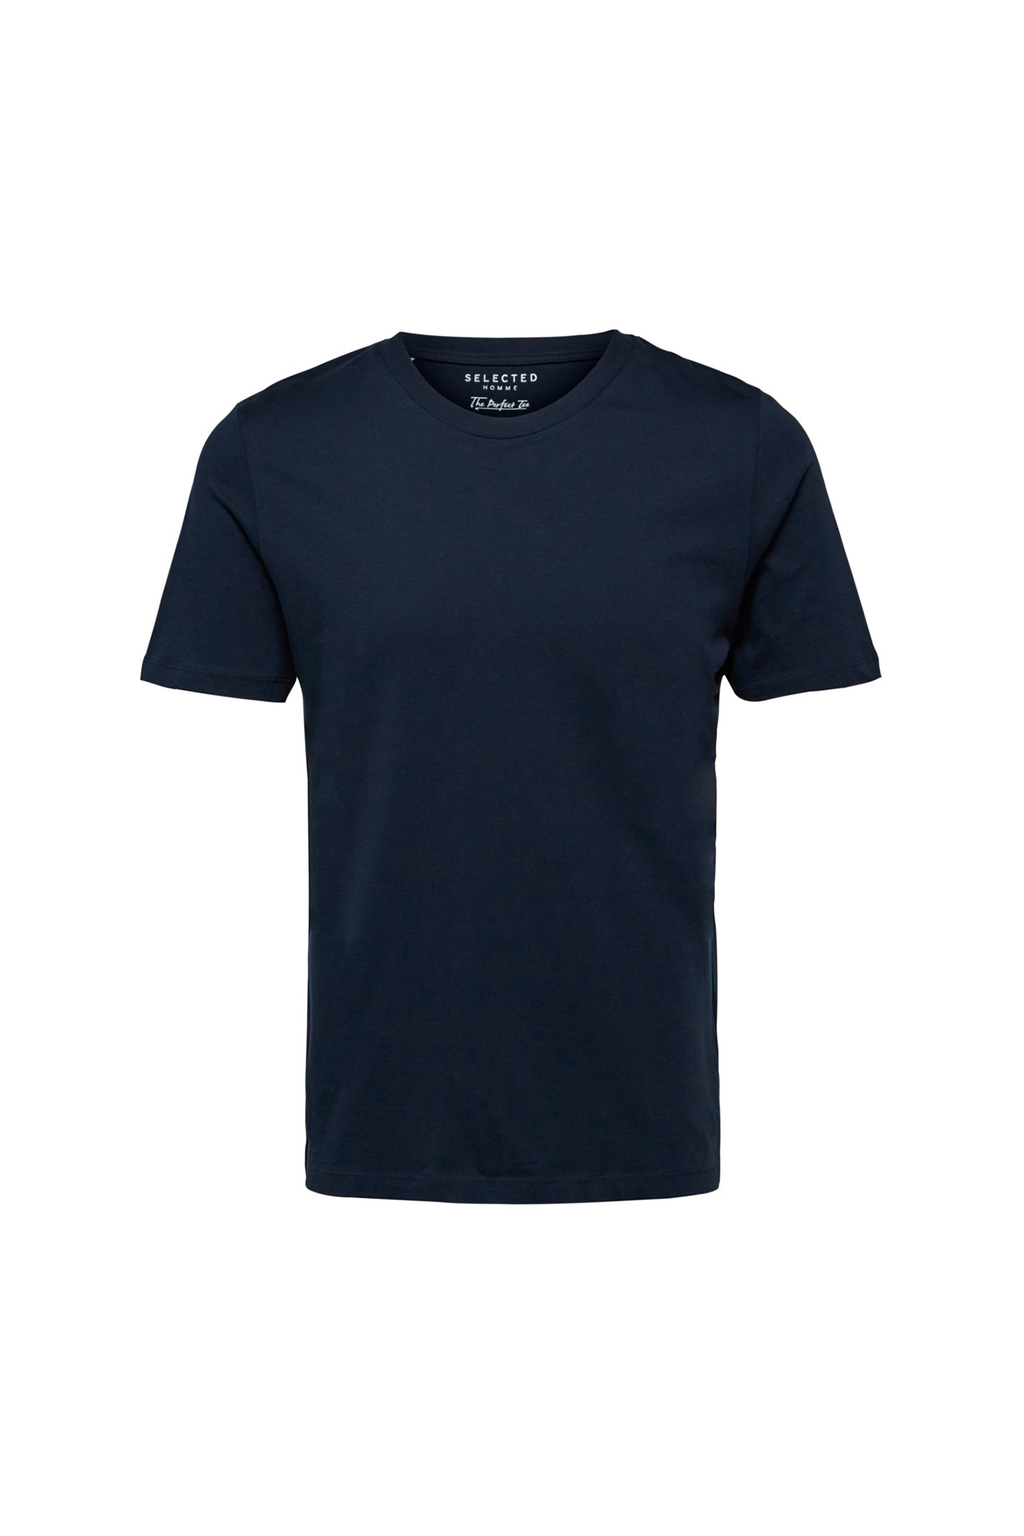 The Perfect Tee - O-Neck - Dark Sapphire